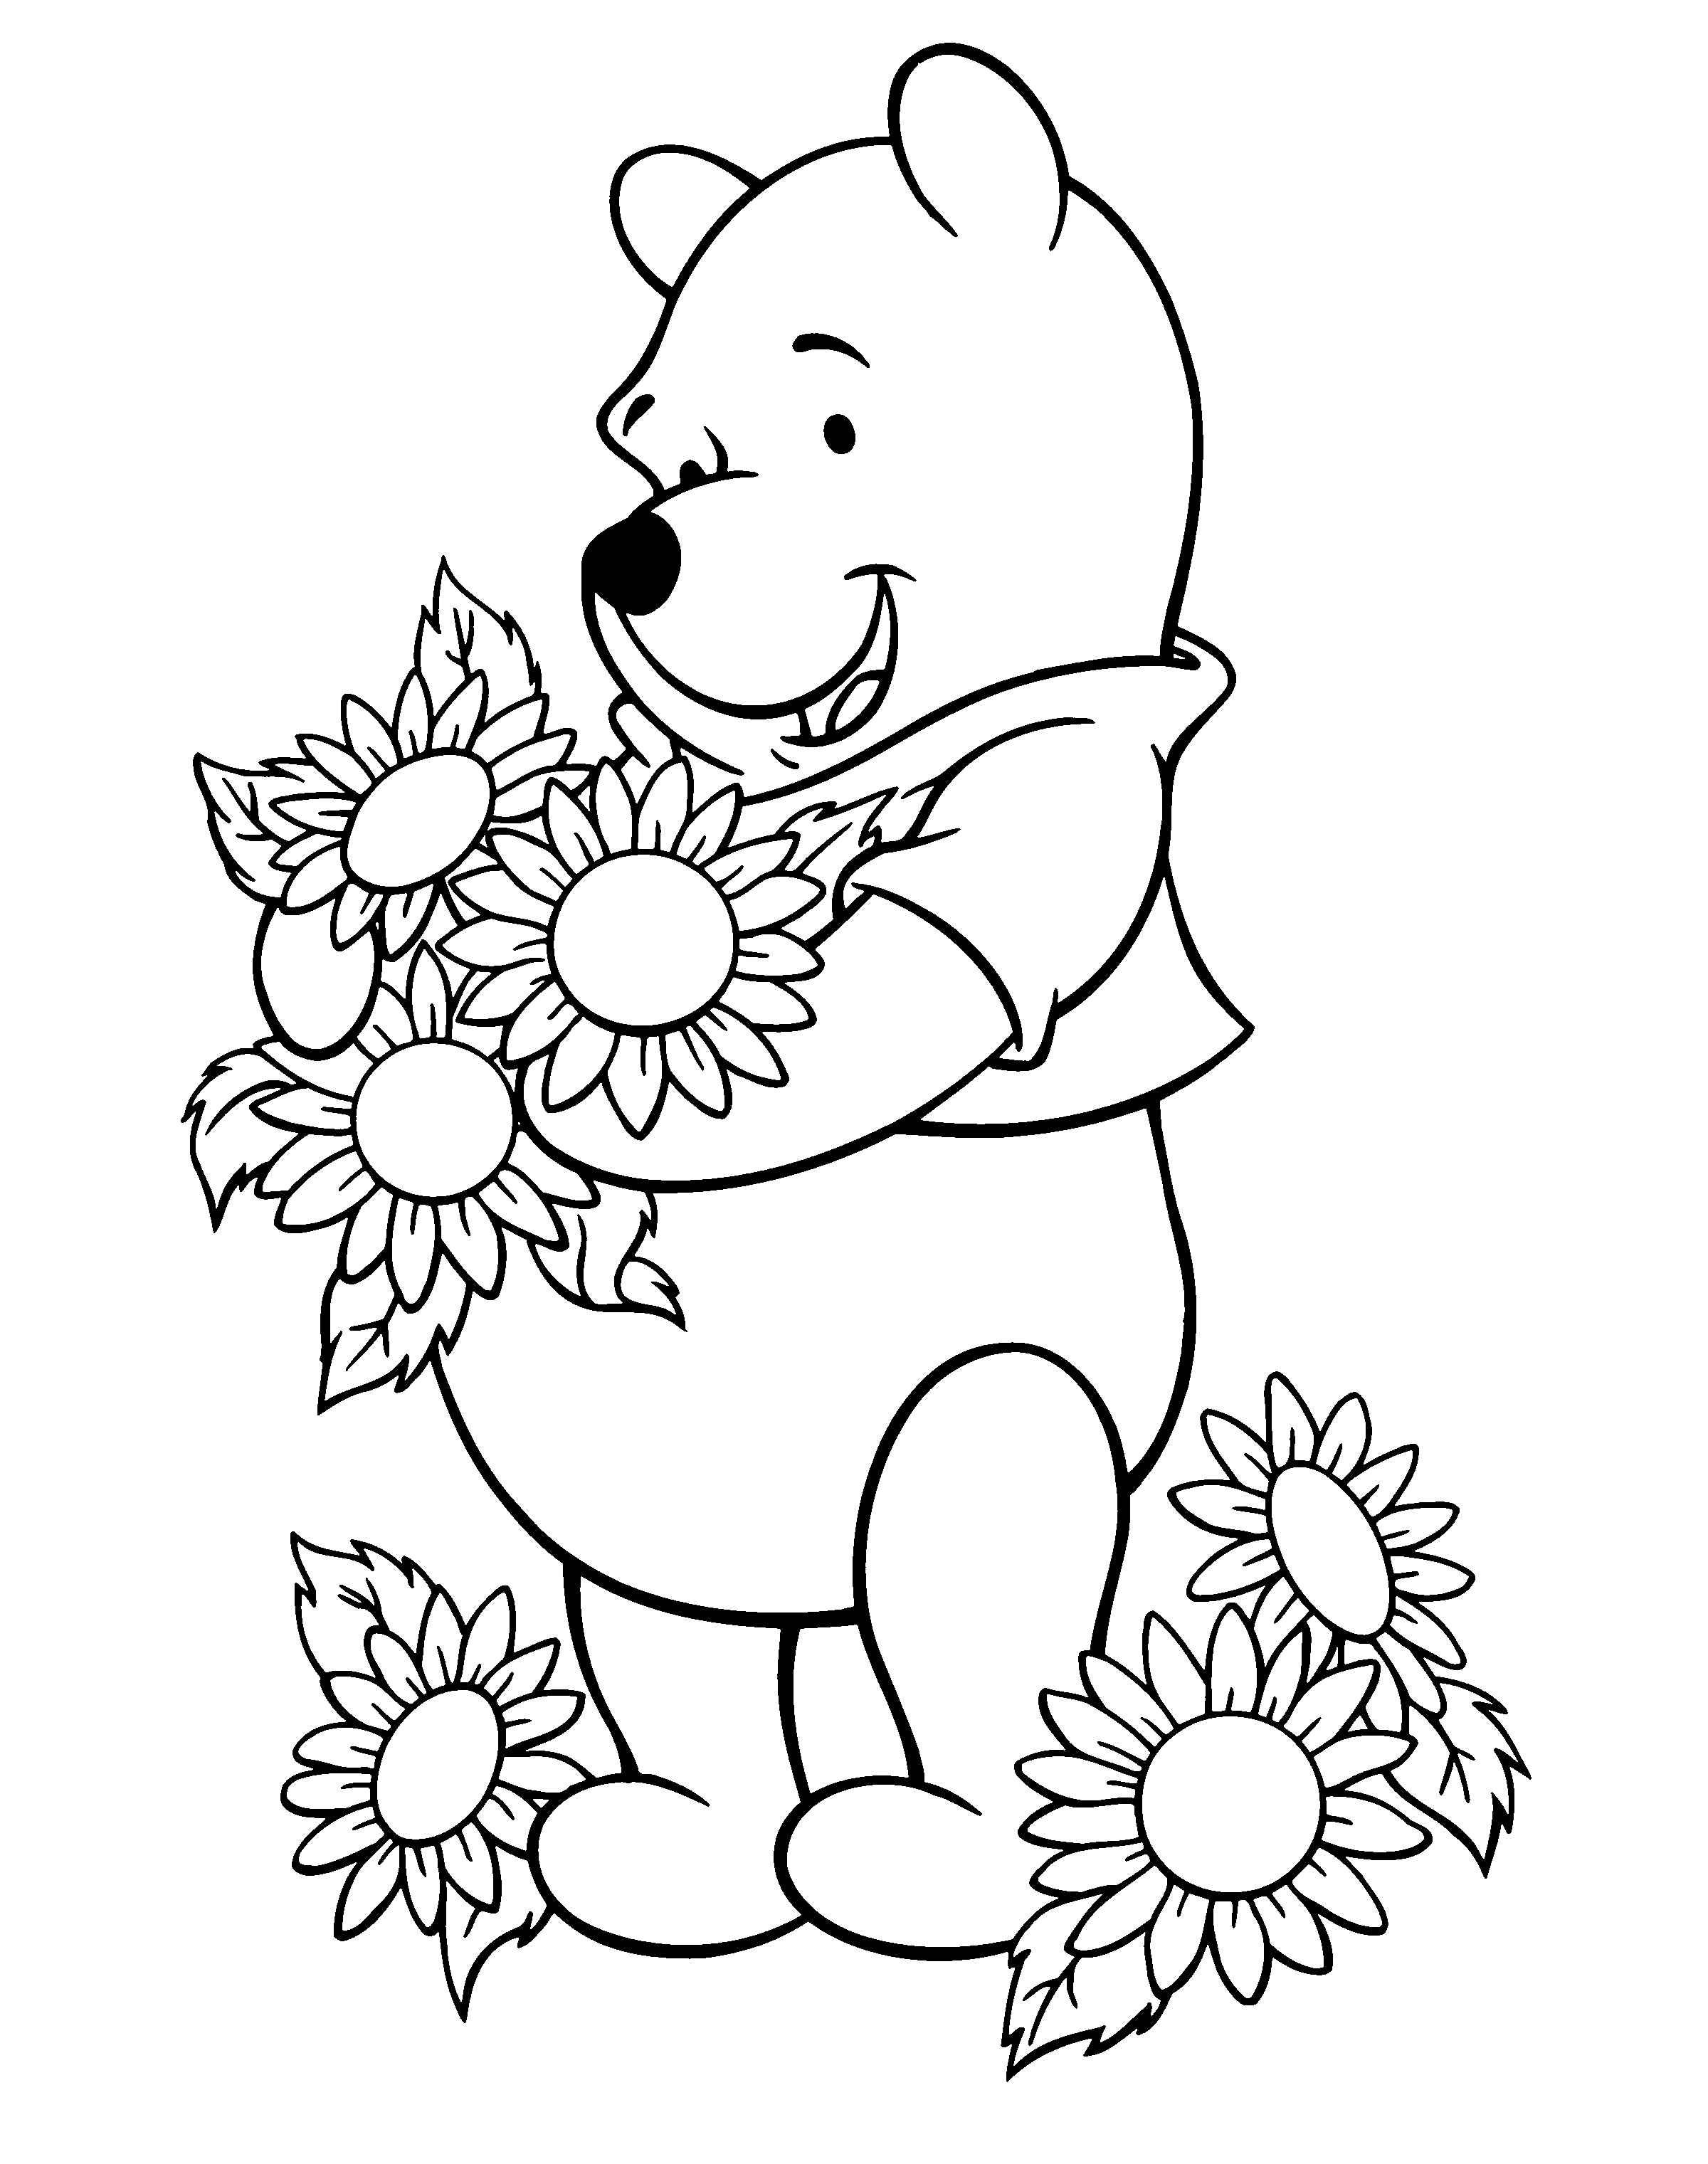 sunflower pictures to colour in printable sunflower coloring pages flowers pdfs print colour to pictures in sunflower